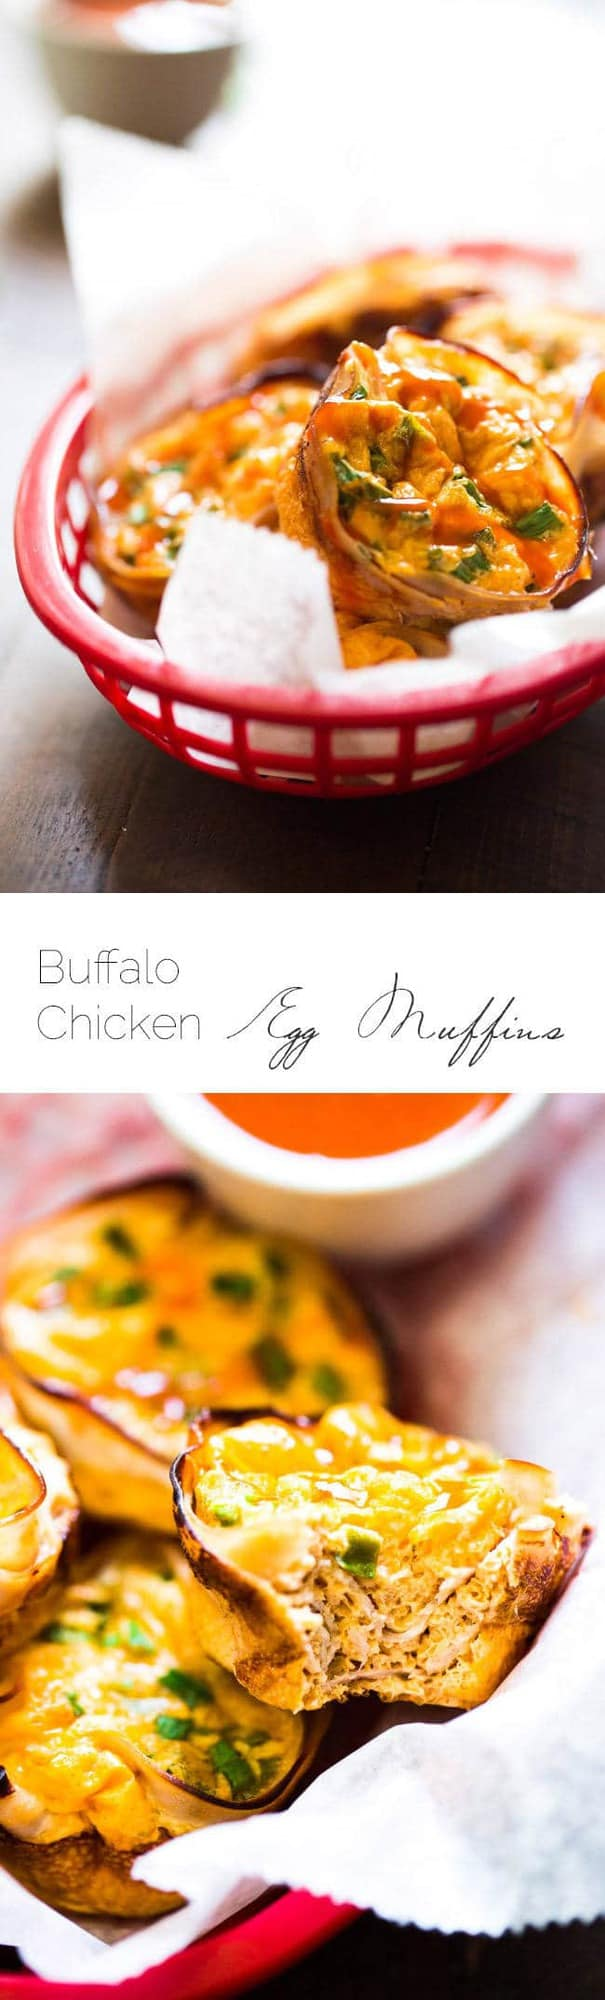 Buffalo Chicken Egg Muffin Recipe - Protein Packed and ready in 20 minutes, these are perfect for a healthy on the go breakfast or game day bite! | Foodfaithfitness.com | #recipe